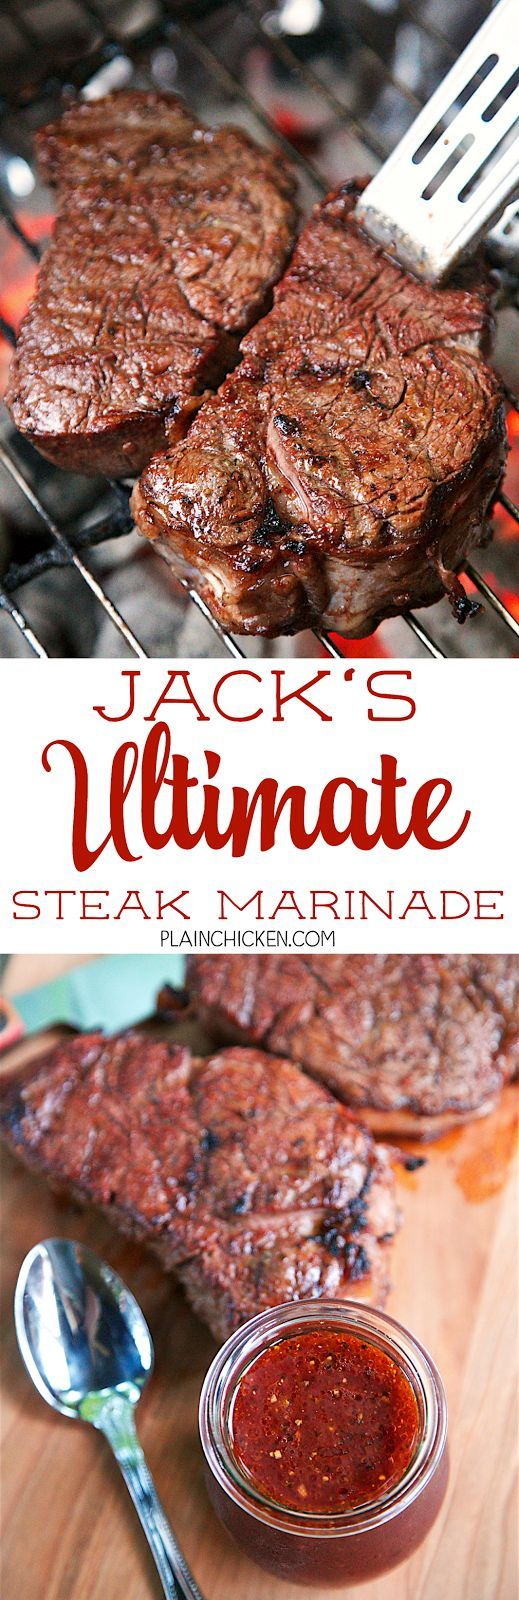 Jack's Ultimate Steak Marinade